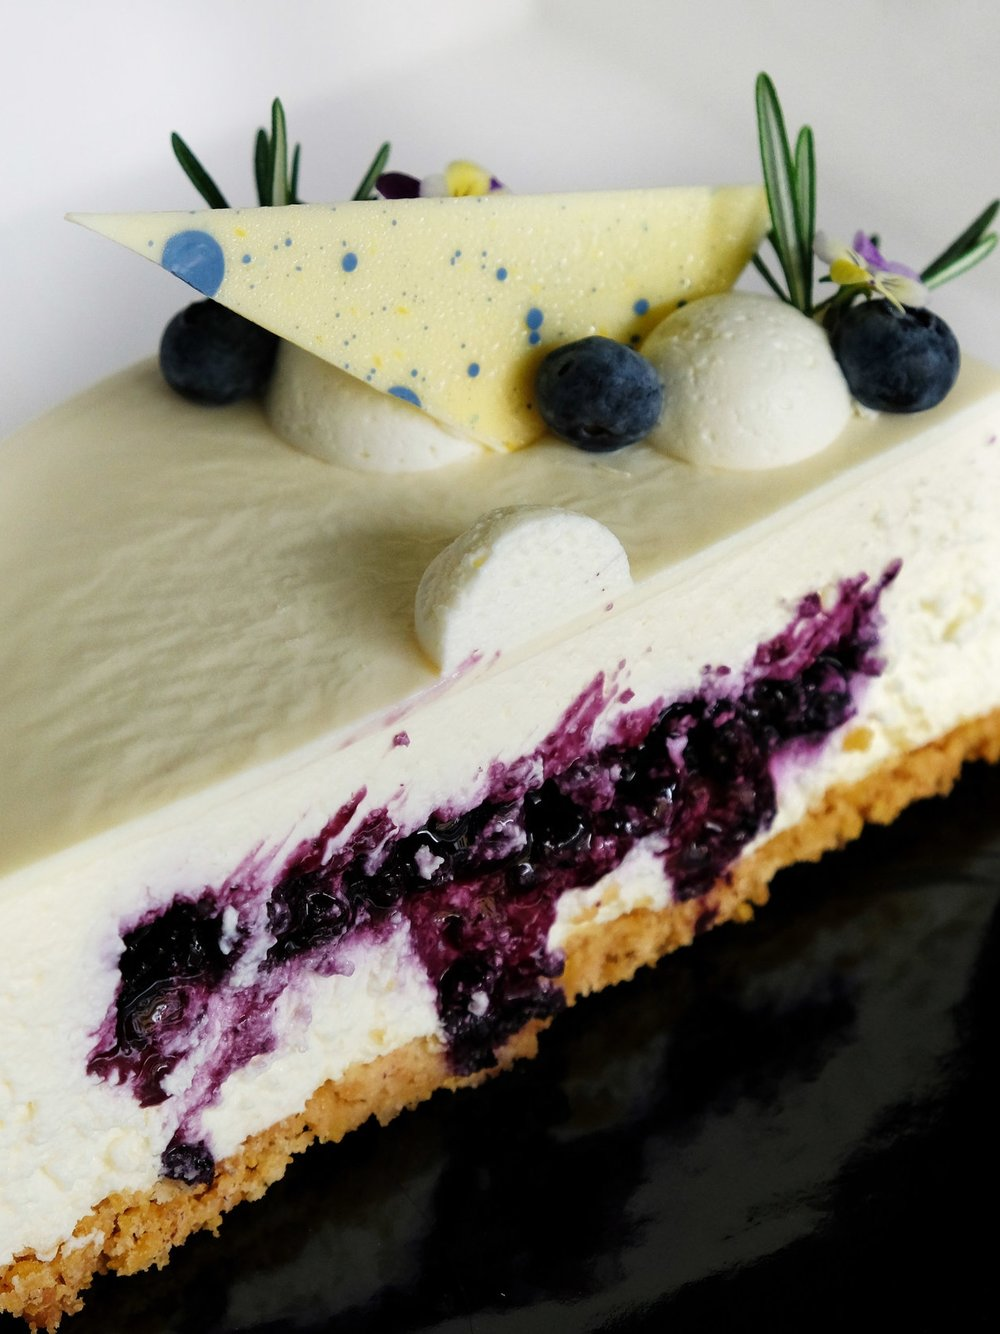 Blueberry & Camembert Cheesecake